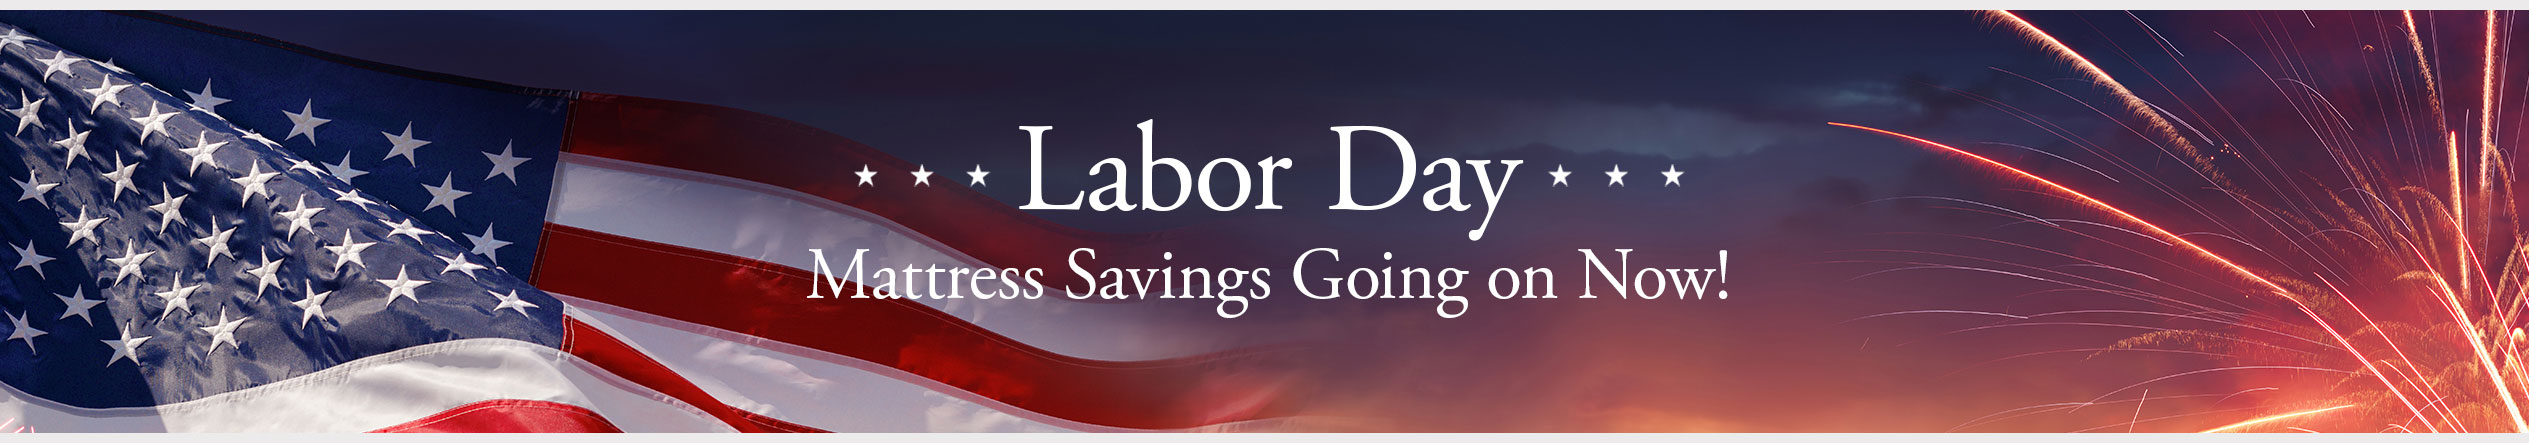 Labor Day Mattress Savings at Jordan's Furniture located in CT, MA, ME, NH and RI!